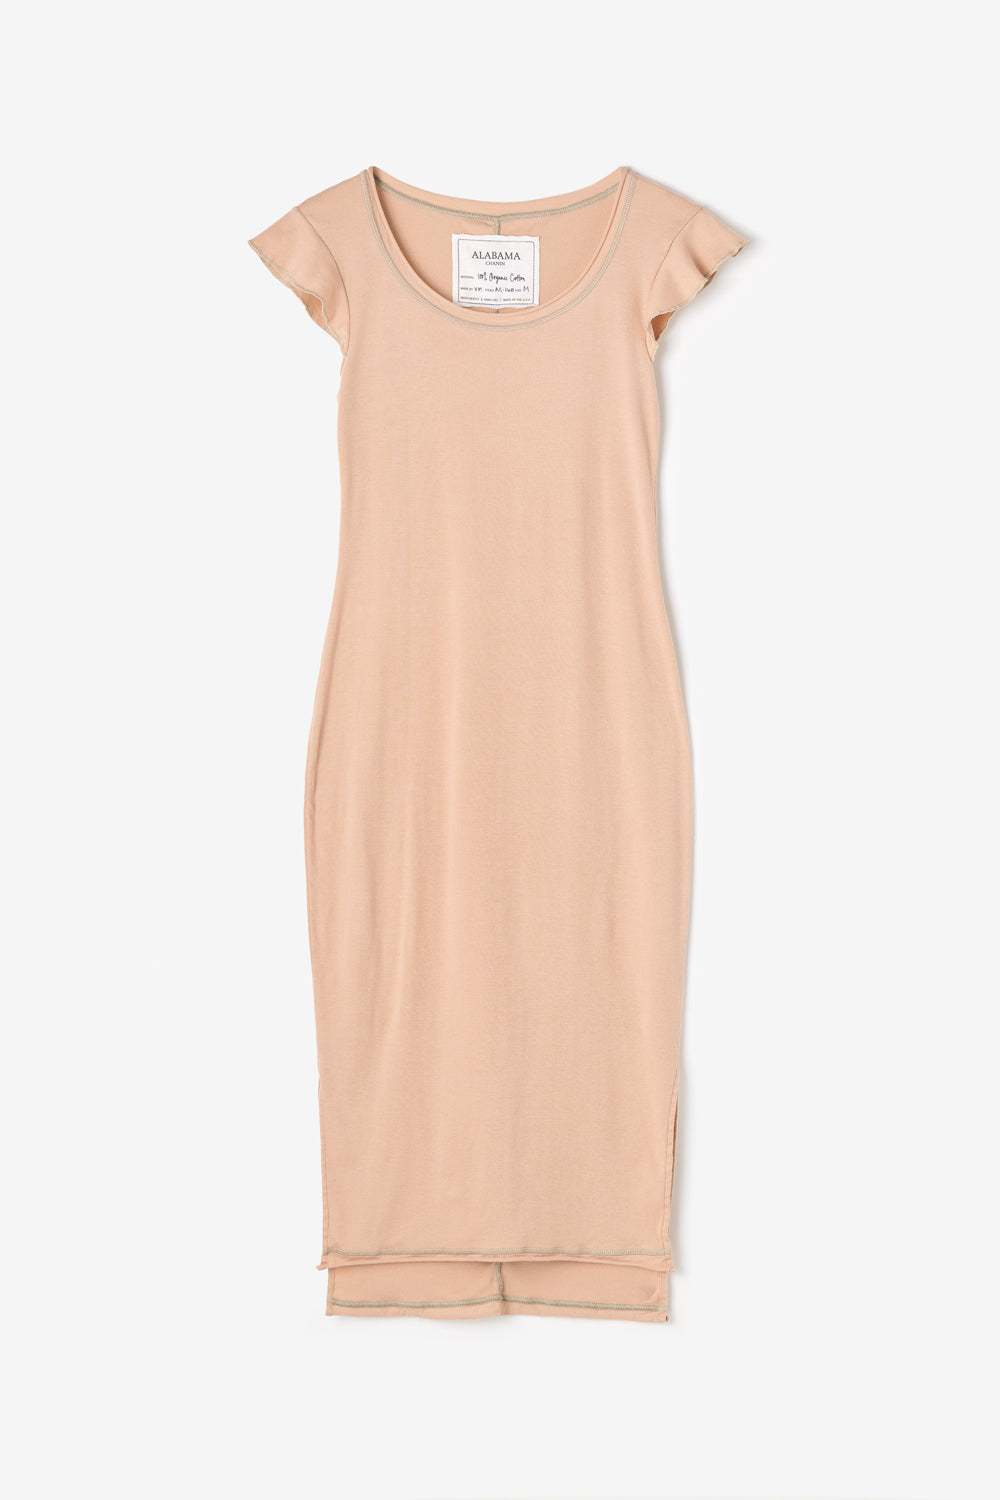 Alabama Chanin Organic Cotton Felicity Dress with Flutter Sleeves in Vetiver Rib